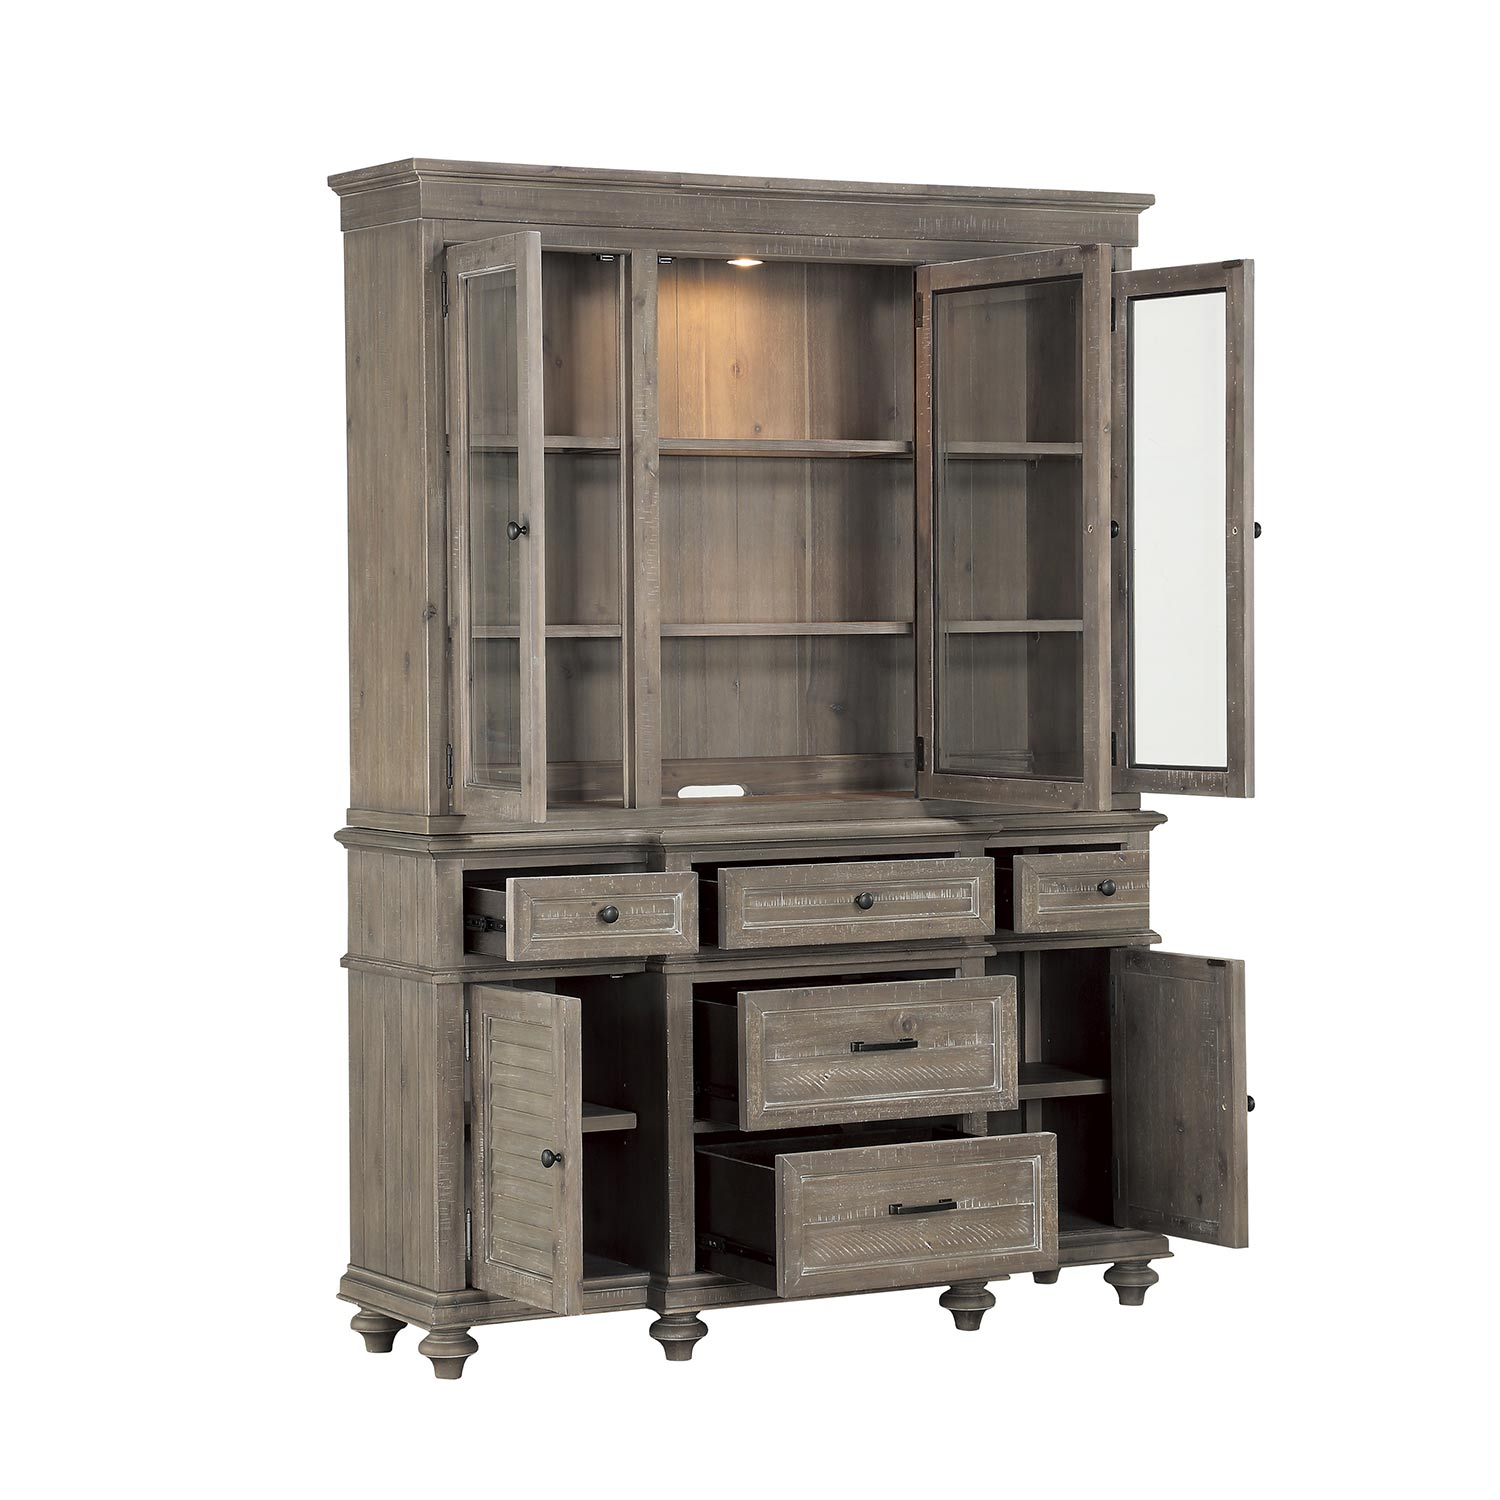 Homelegance Cardano China Cabinet - Driftwood Light Brown